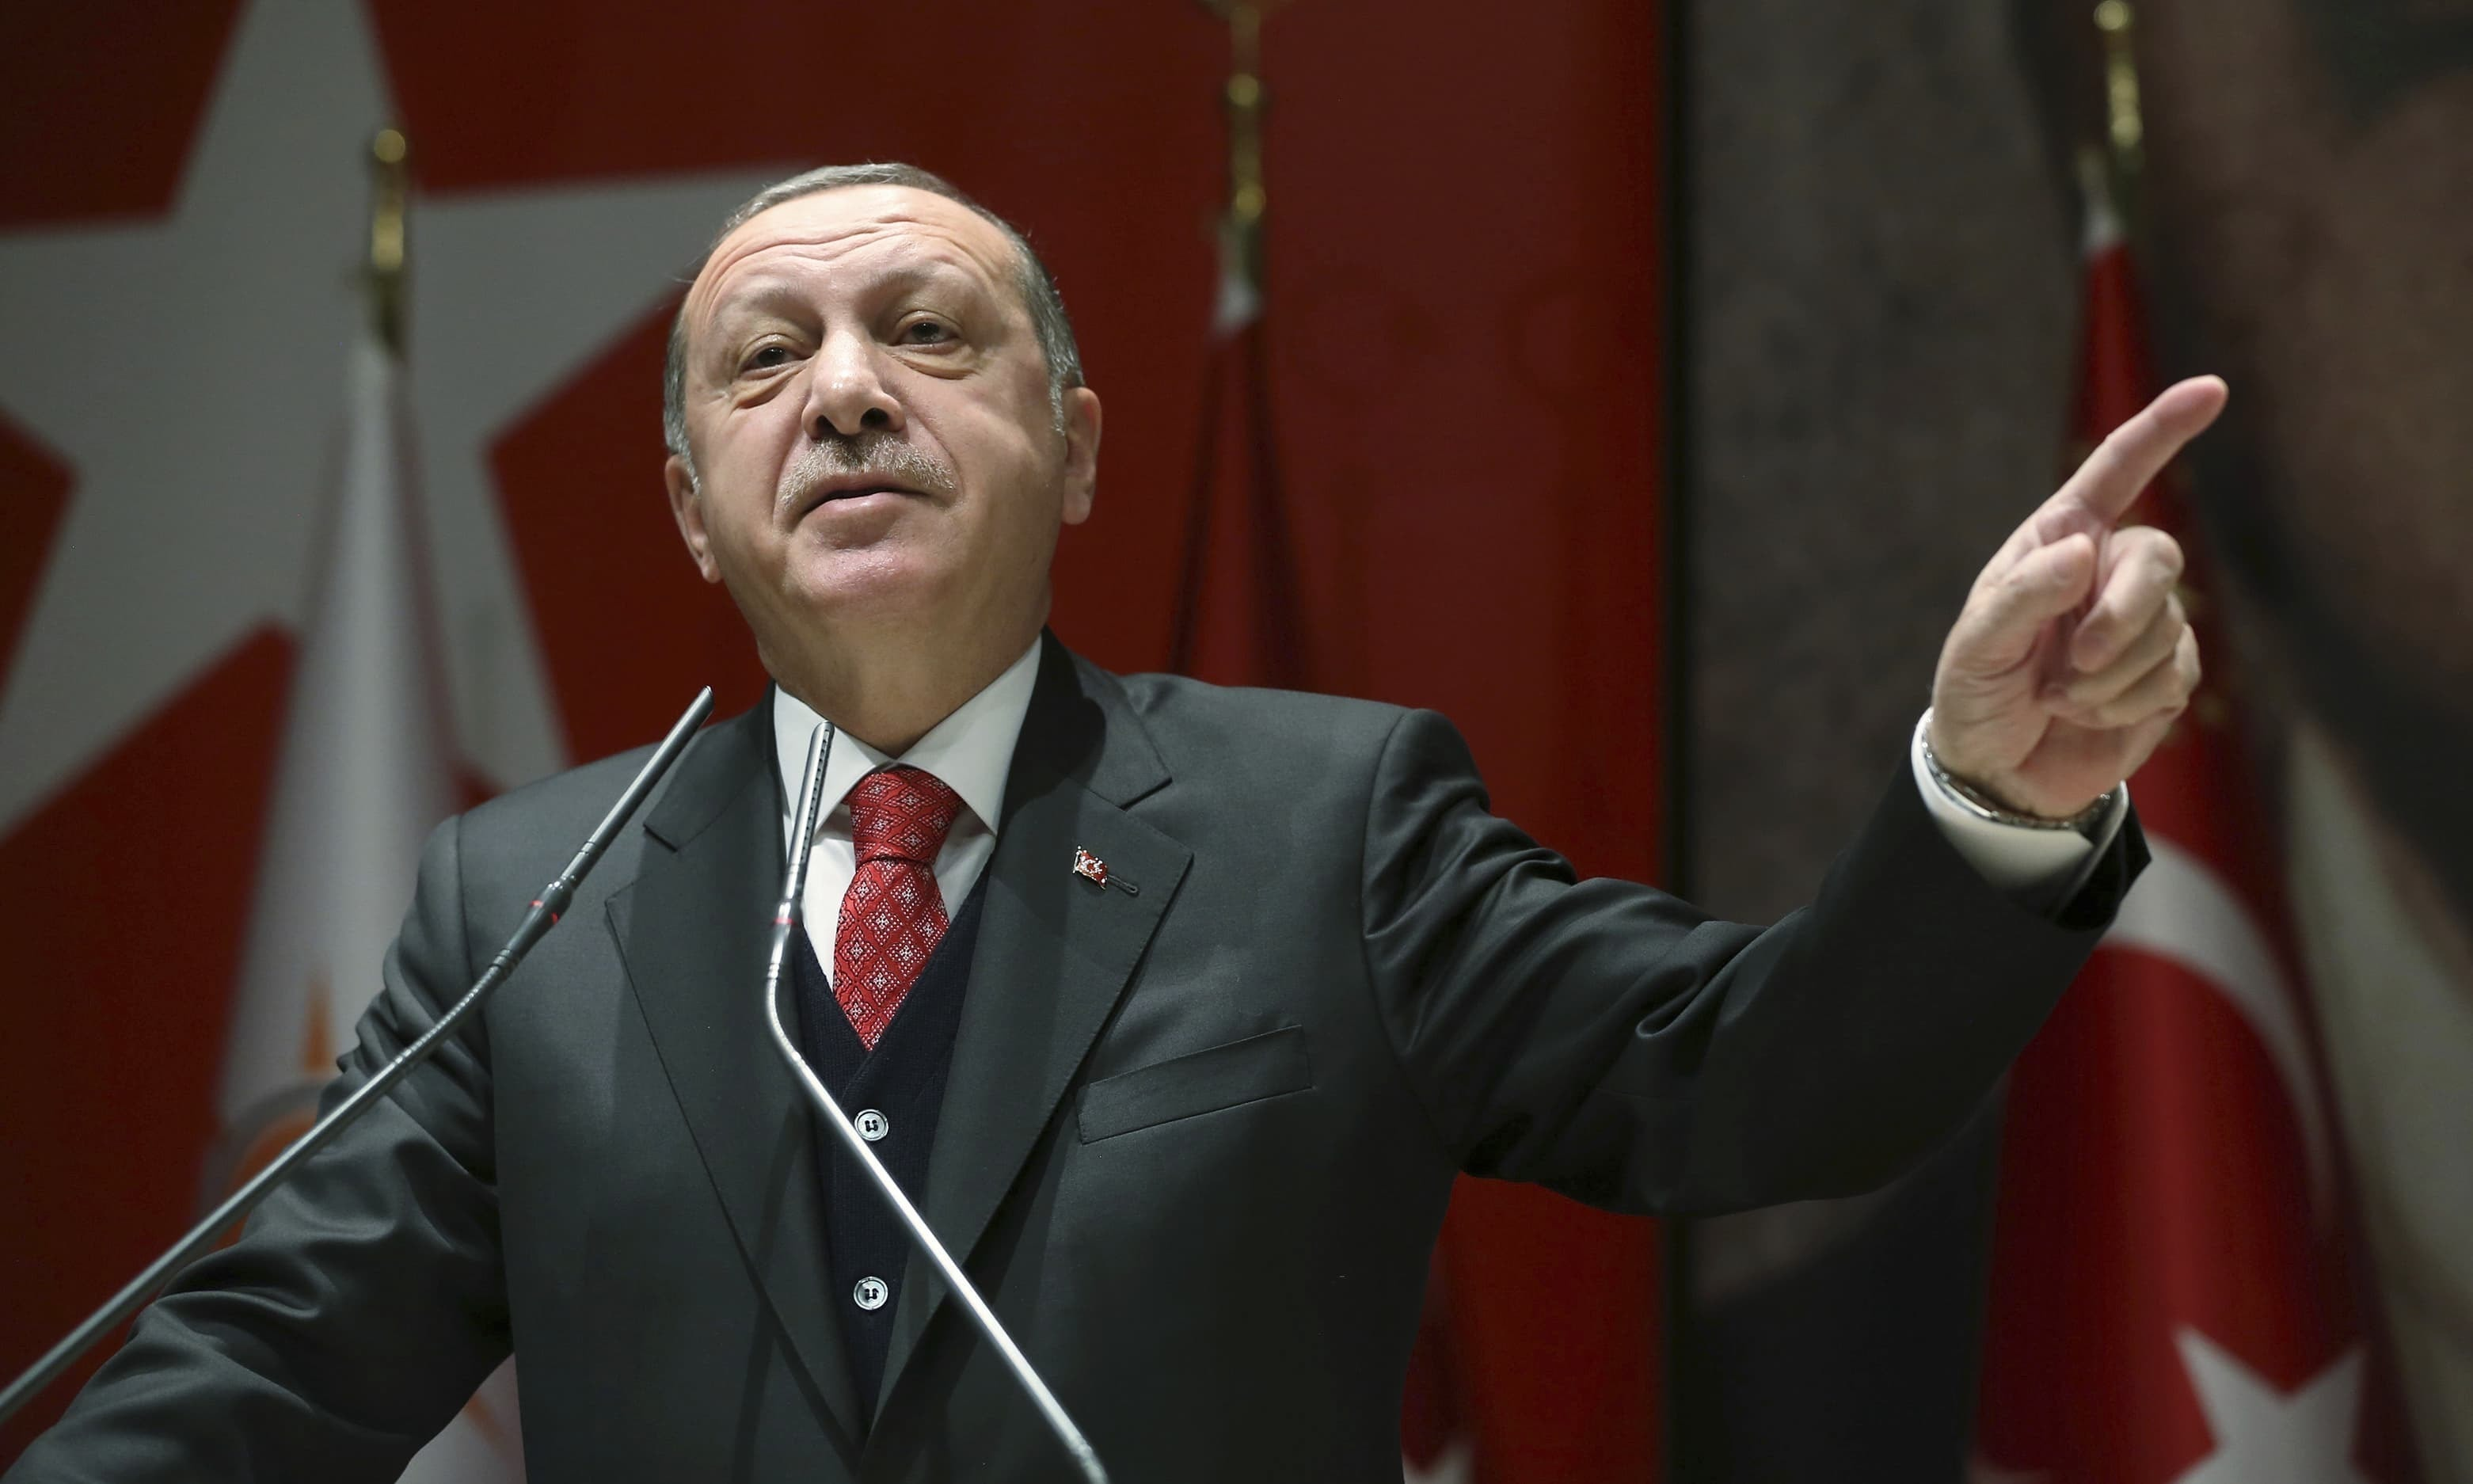 Erdogan won't allow 'more ground' to Syrian troops in Idlib